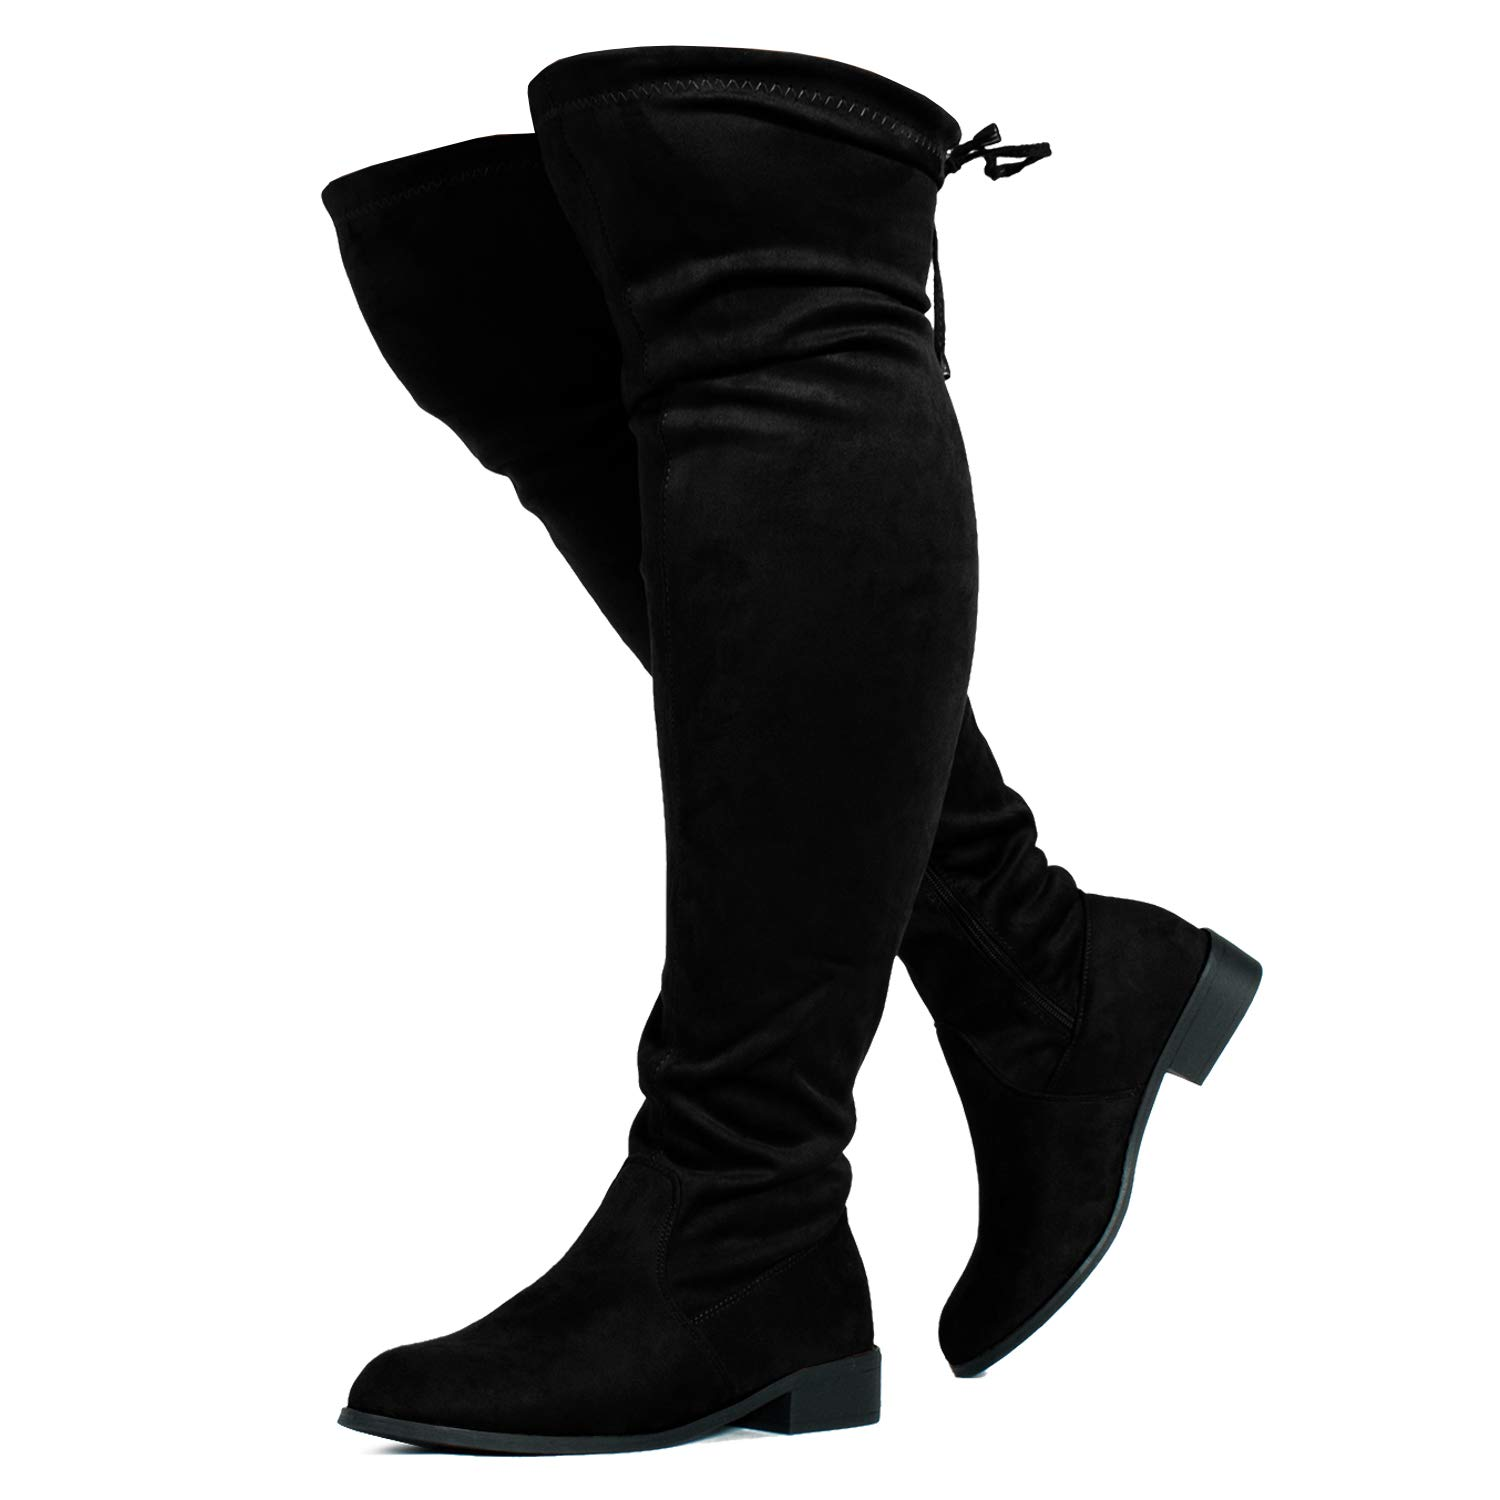 RF ROOM OF FASHION Stretchy Over The Knee Riding Boots (Wide Calf) Black SU (9) by RF ROOM OF FASHION